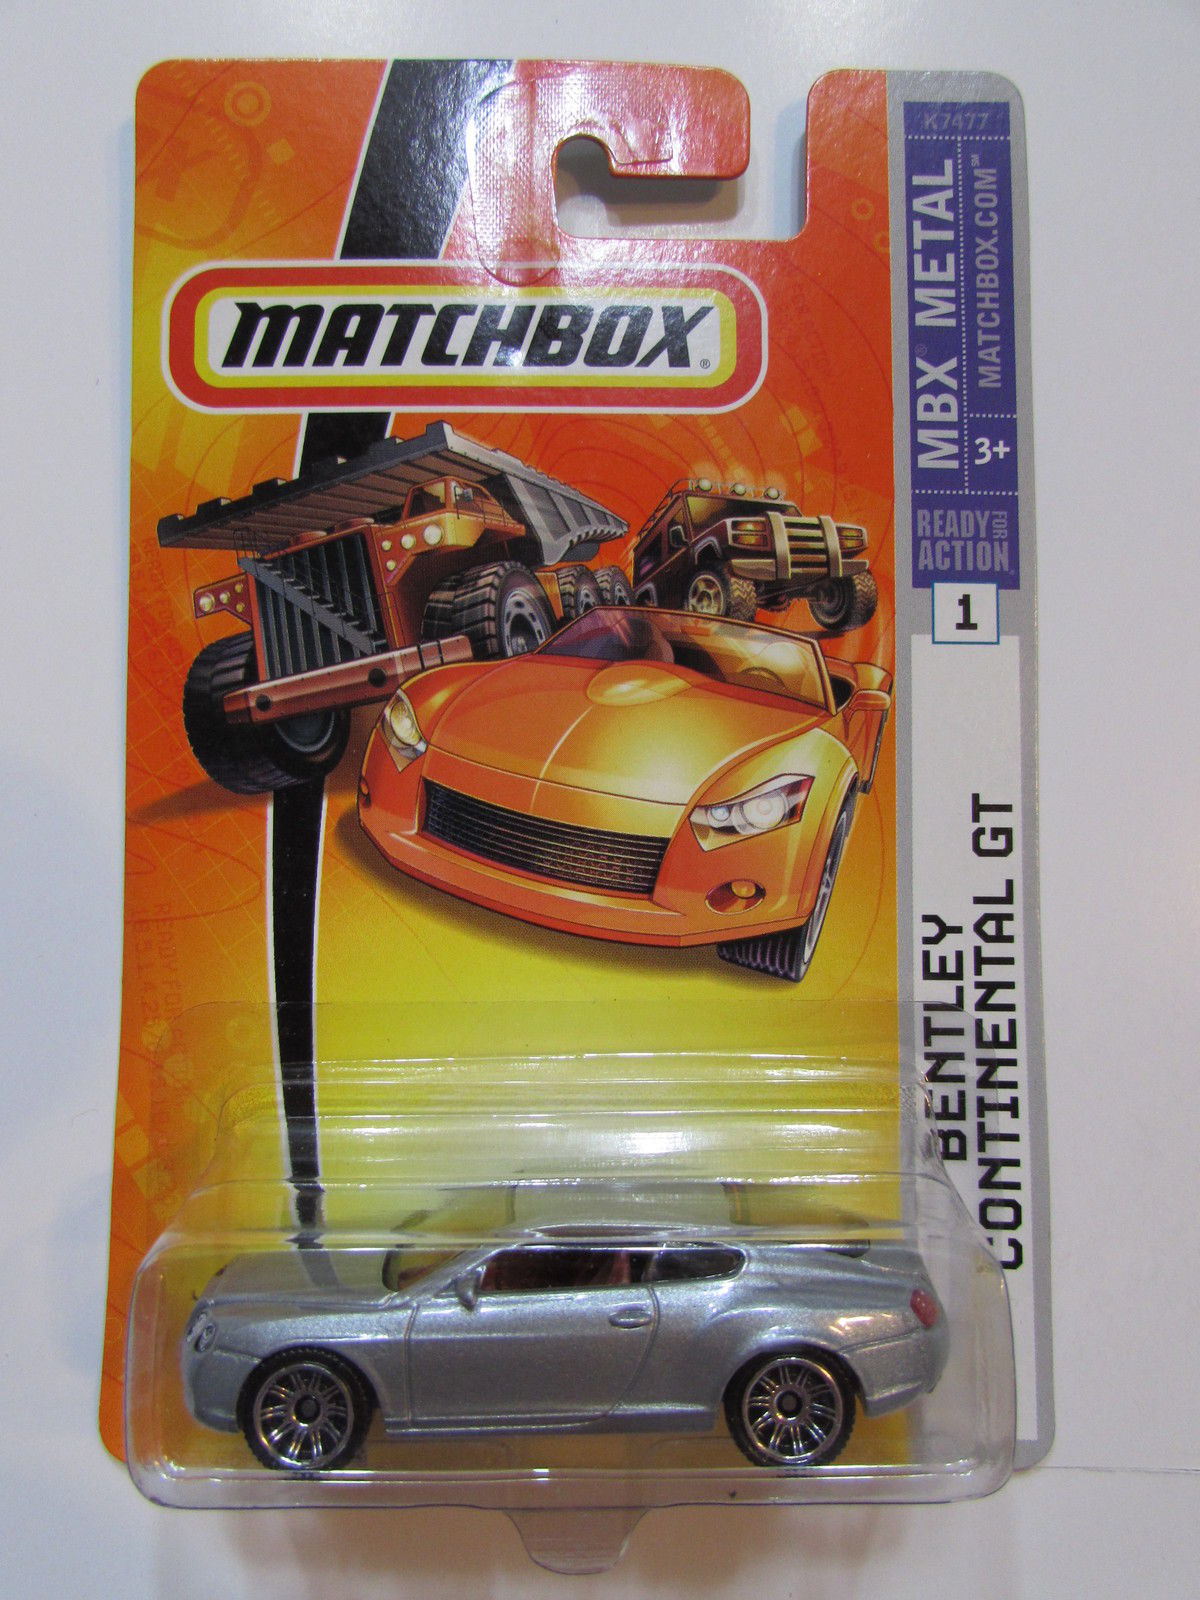 MATCHBOX 2007 BENTLEY CONTINENTAL GT GRAY #1